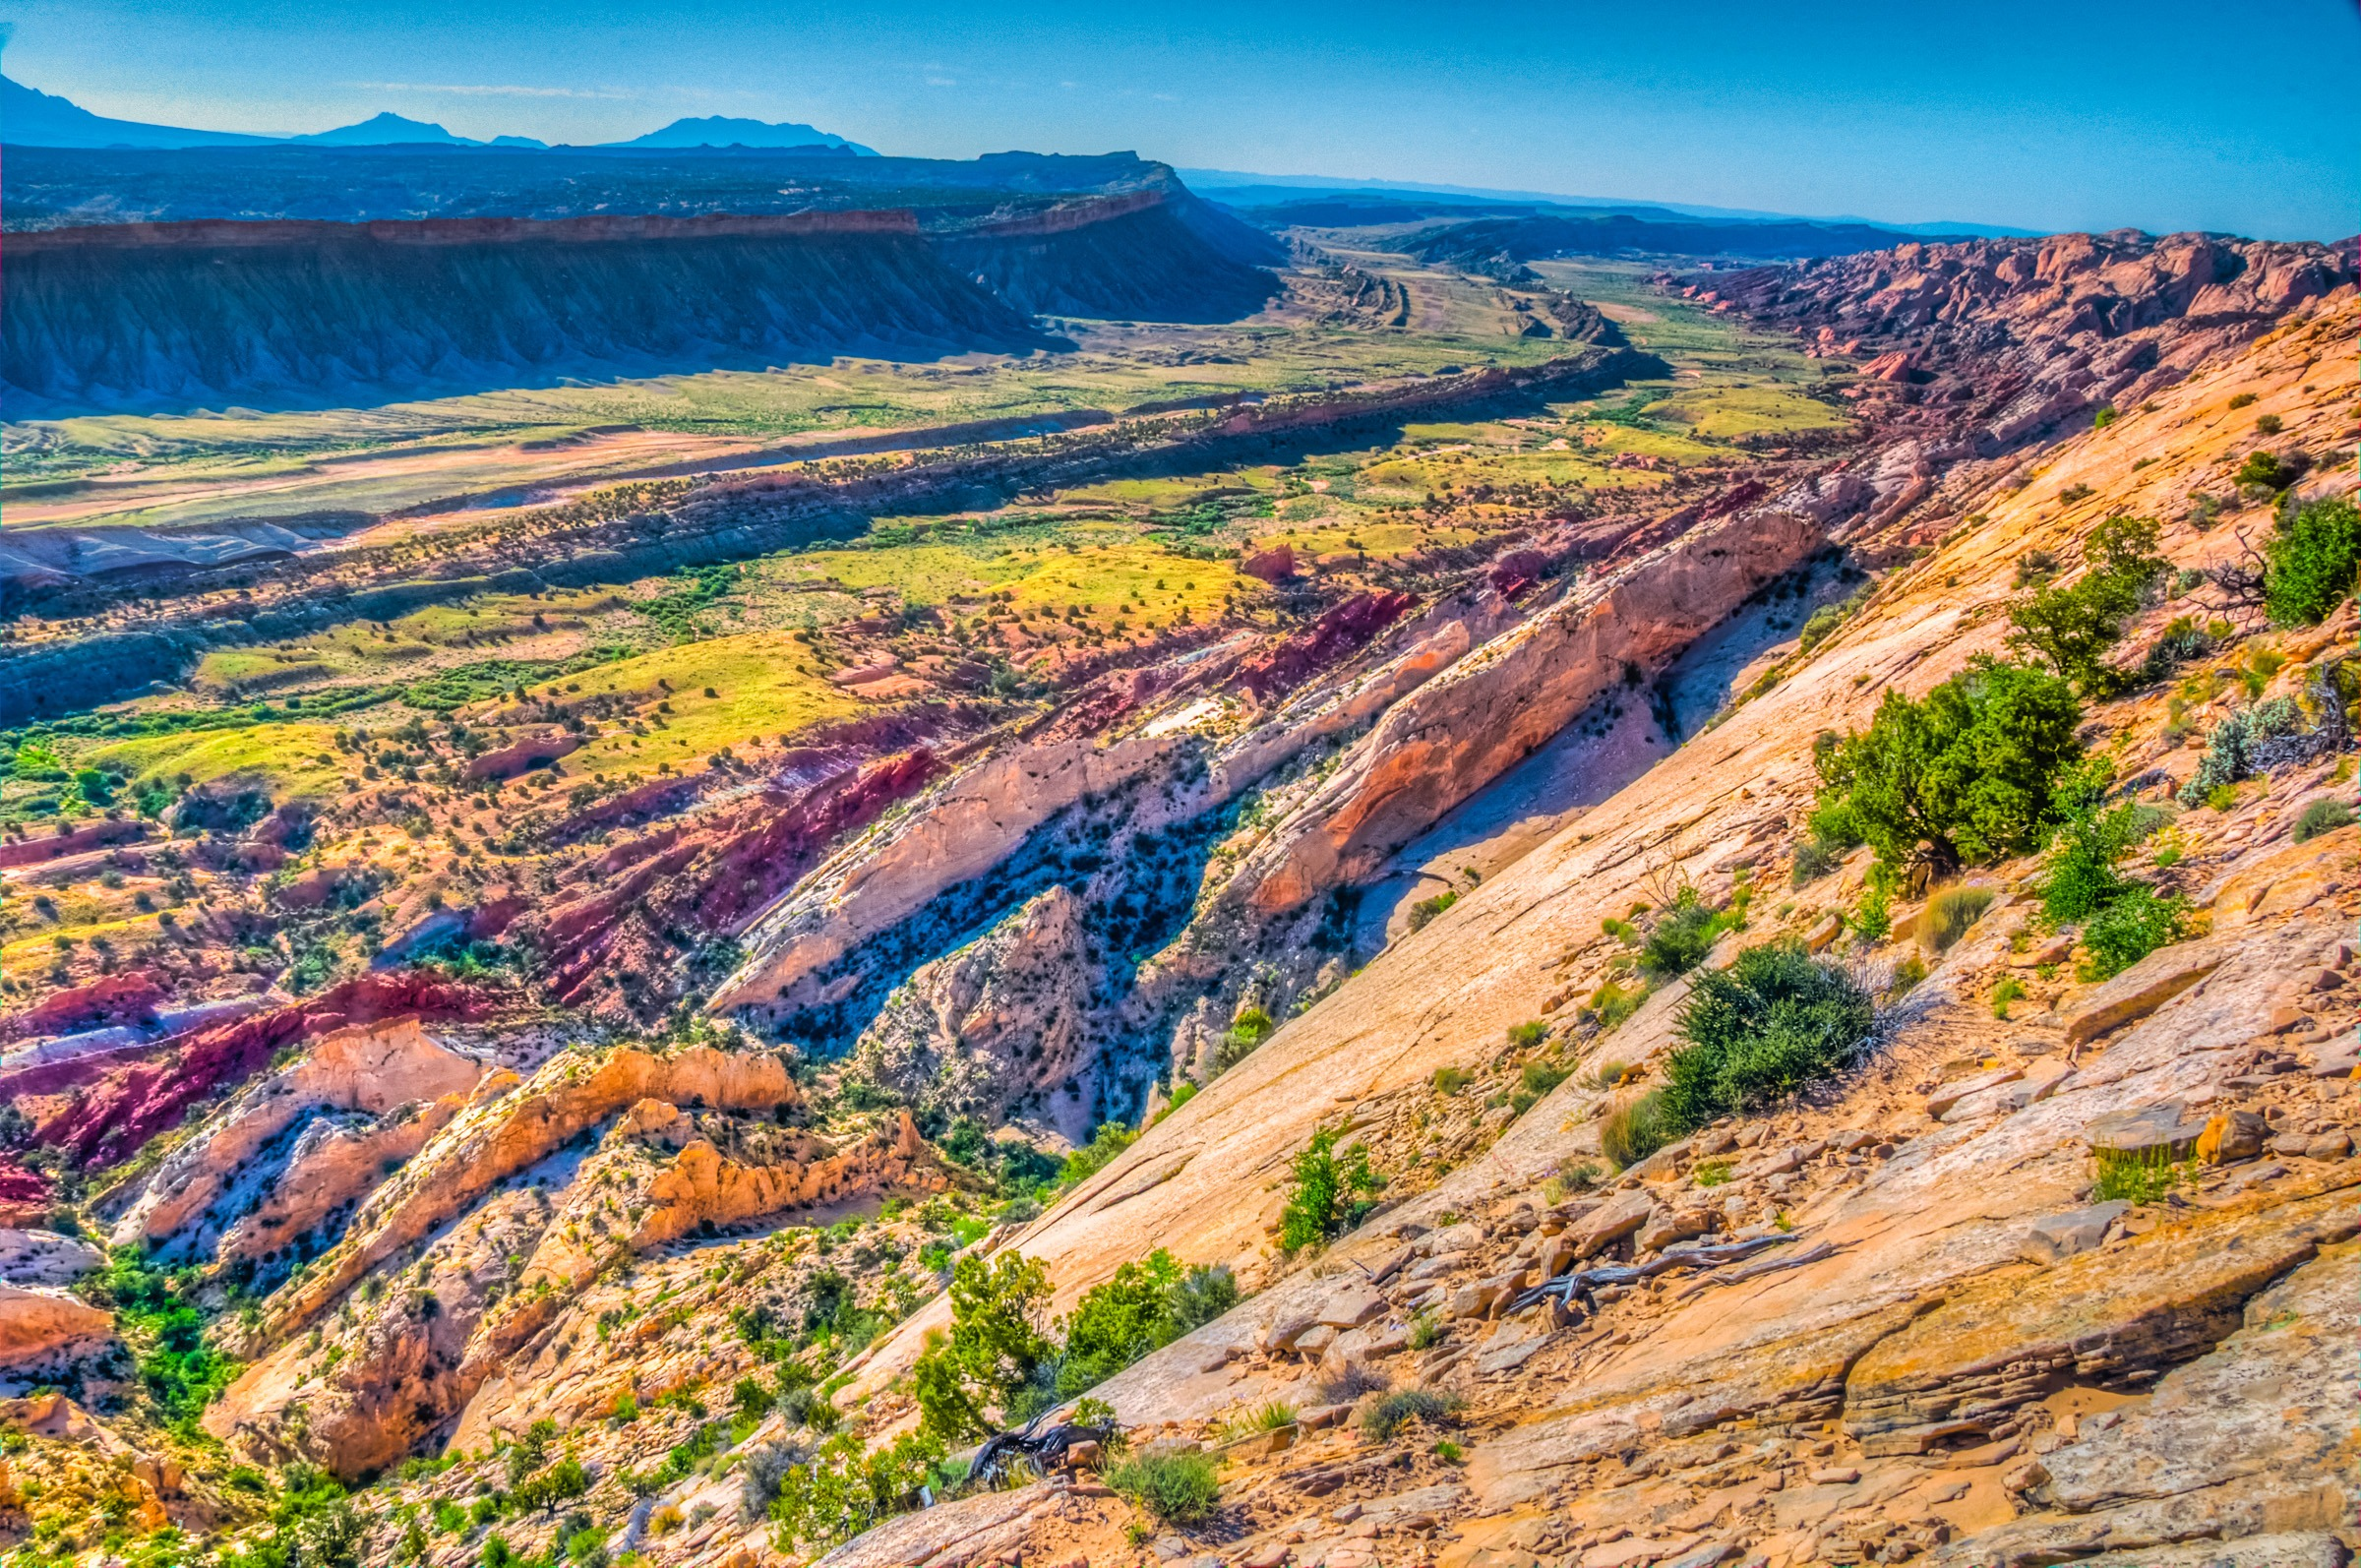 Looking south from Strike Valley Overlook in Capitol Reef National Park.